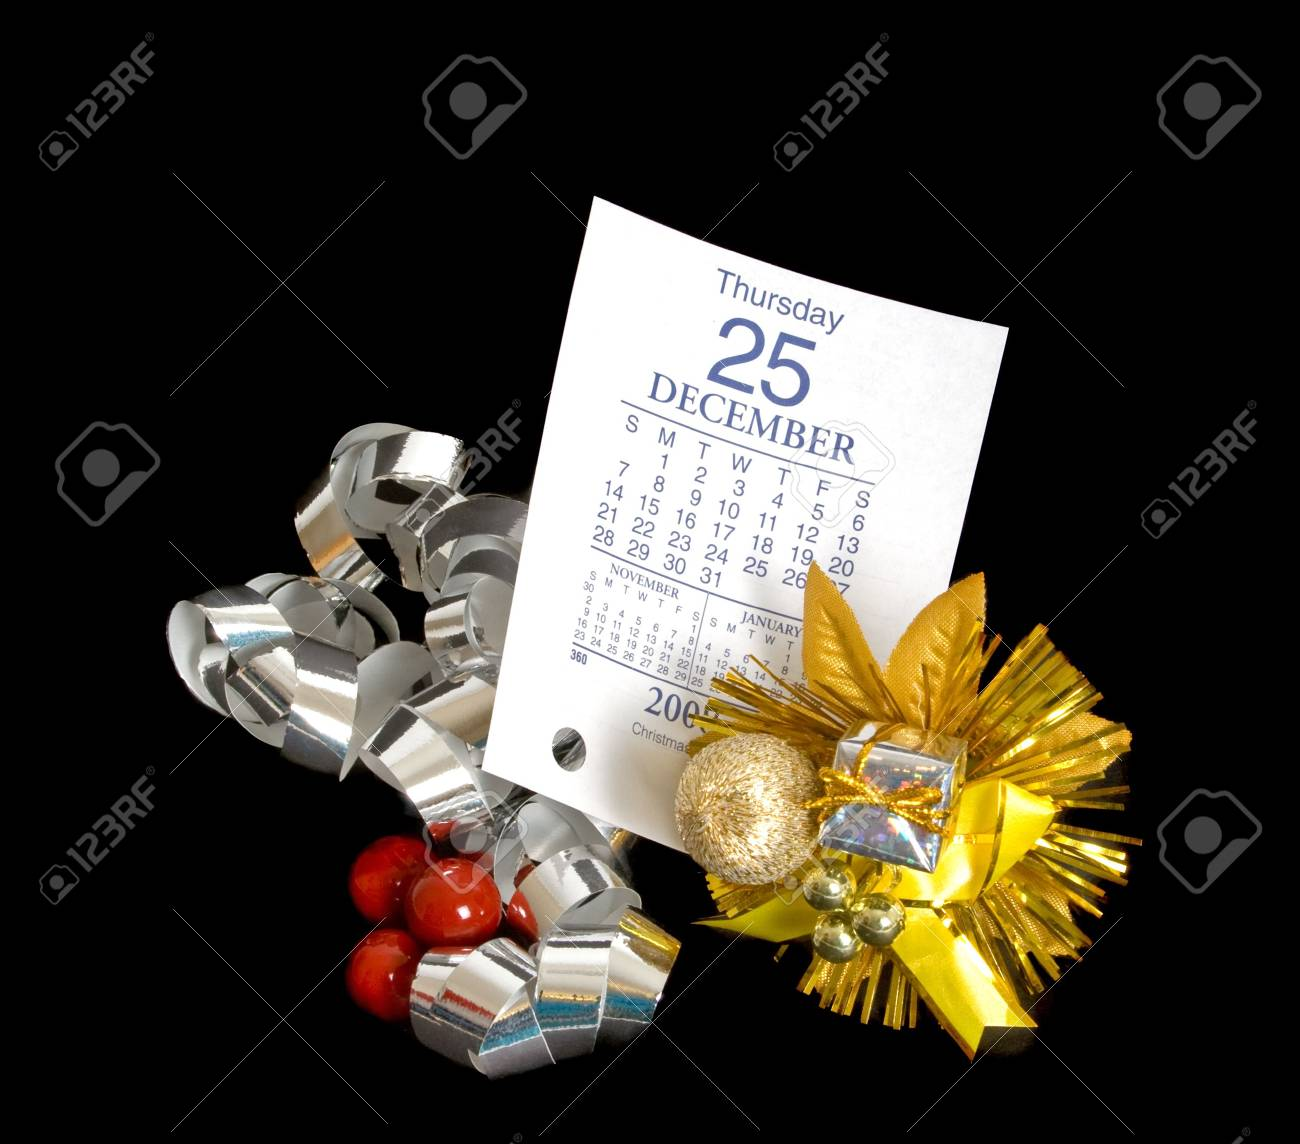 Calendar page showing December 25 2008 with Christmas decorations over black background. Stock Photo - 3217083